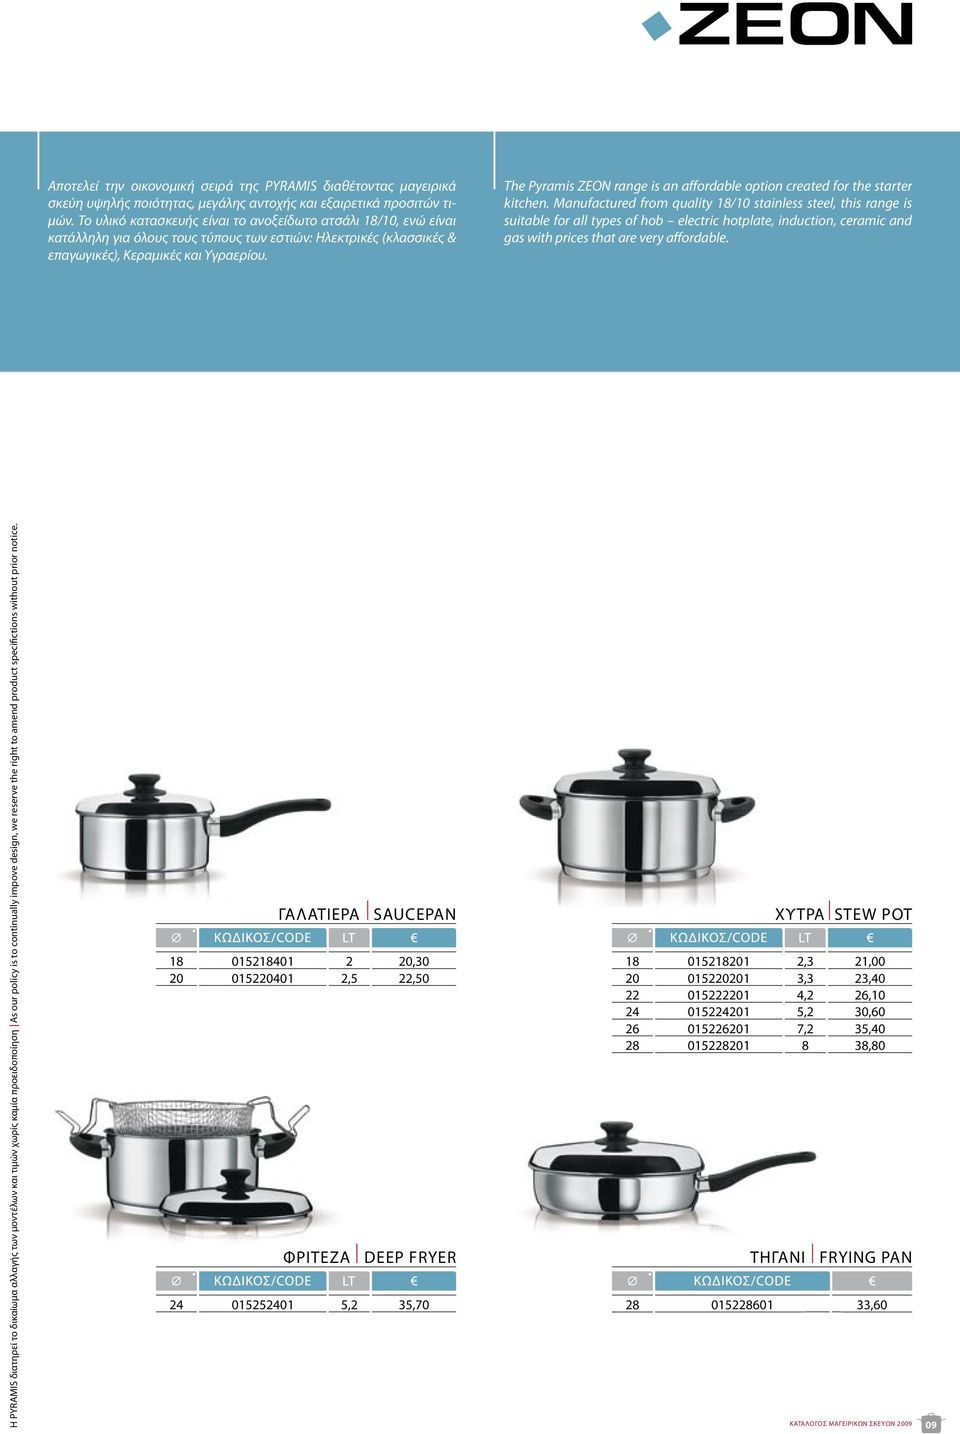 The Pyramis ZEON range is an affordable option created for the starter kitchen.